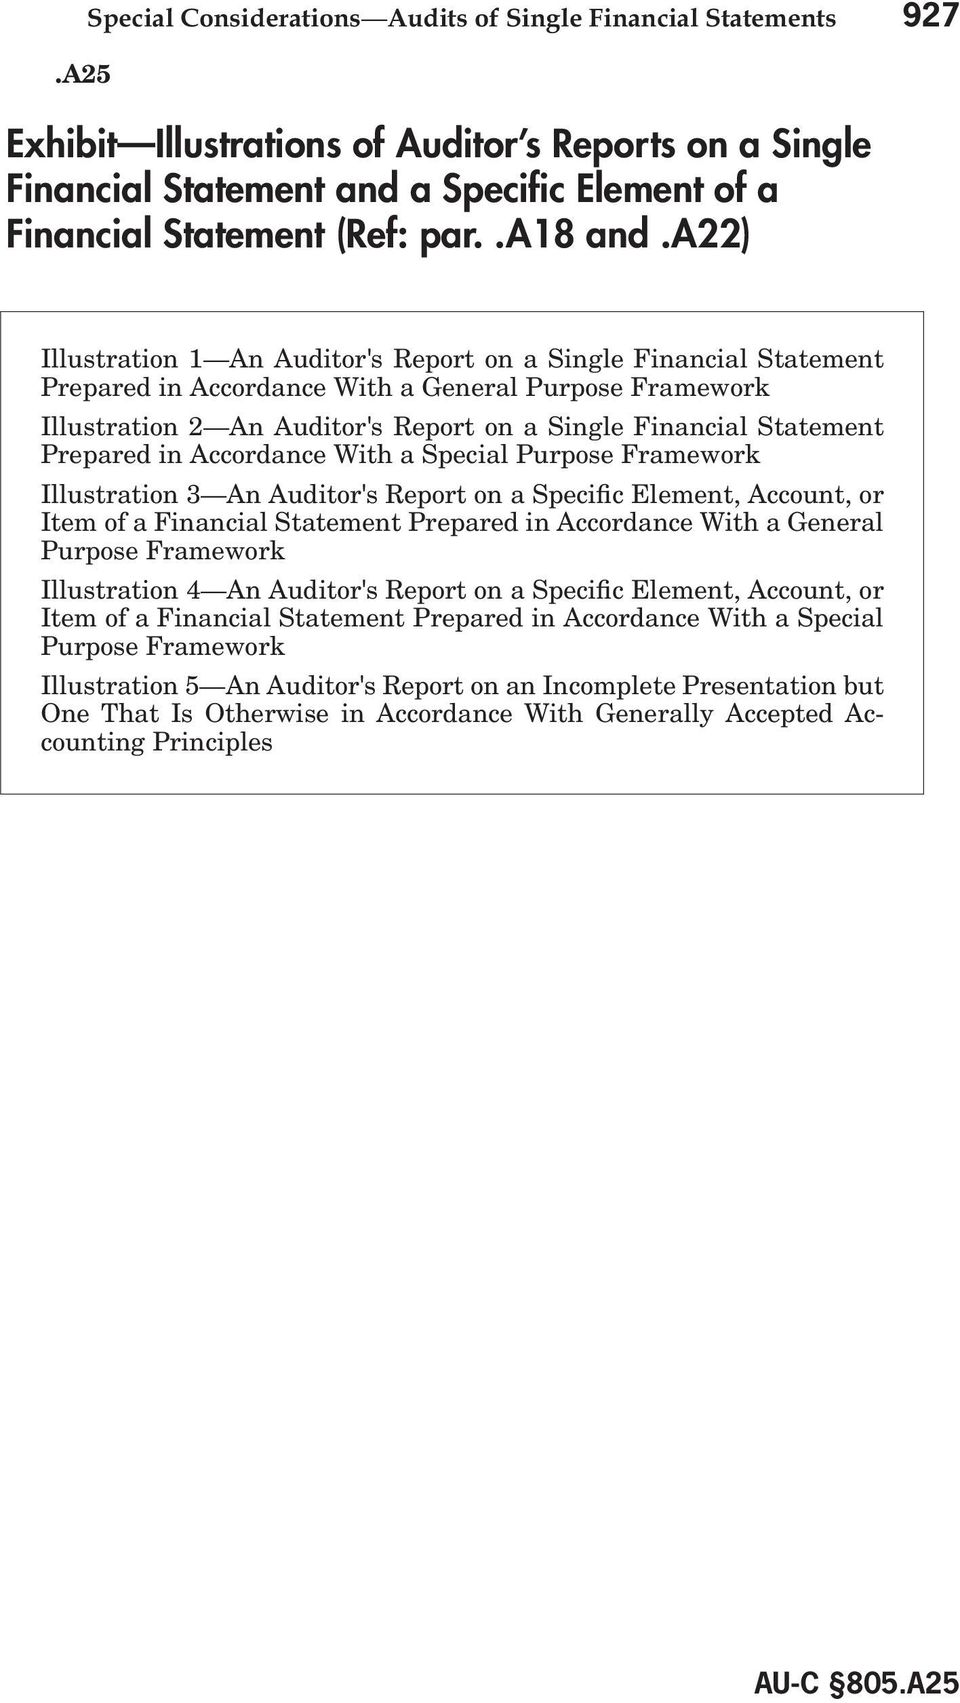 a22) Illustration 1 An Auditor's Report on a Single Financial Statement Prepared in Accordance With a General Purpose Framework Illustration 2 An Auditor's Report on a Single Financial Statement